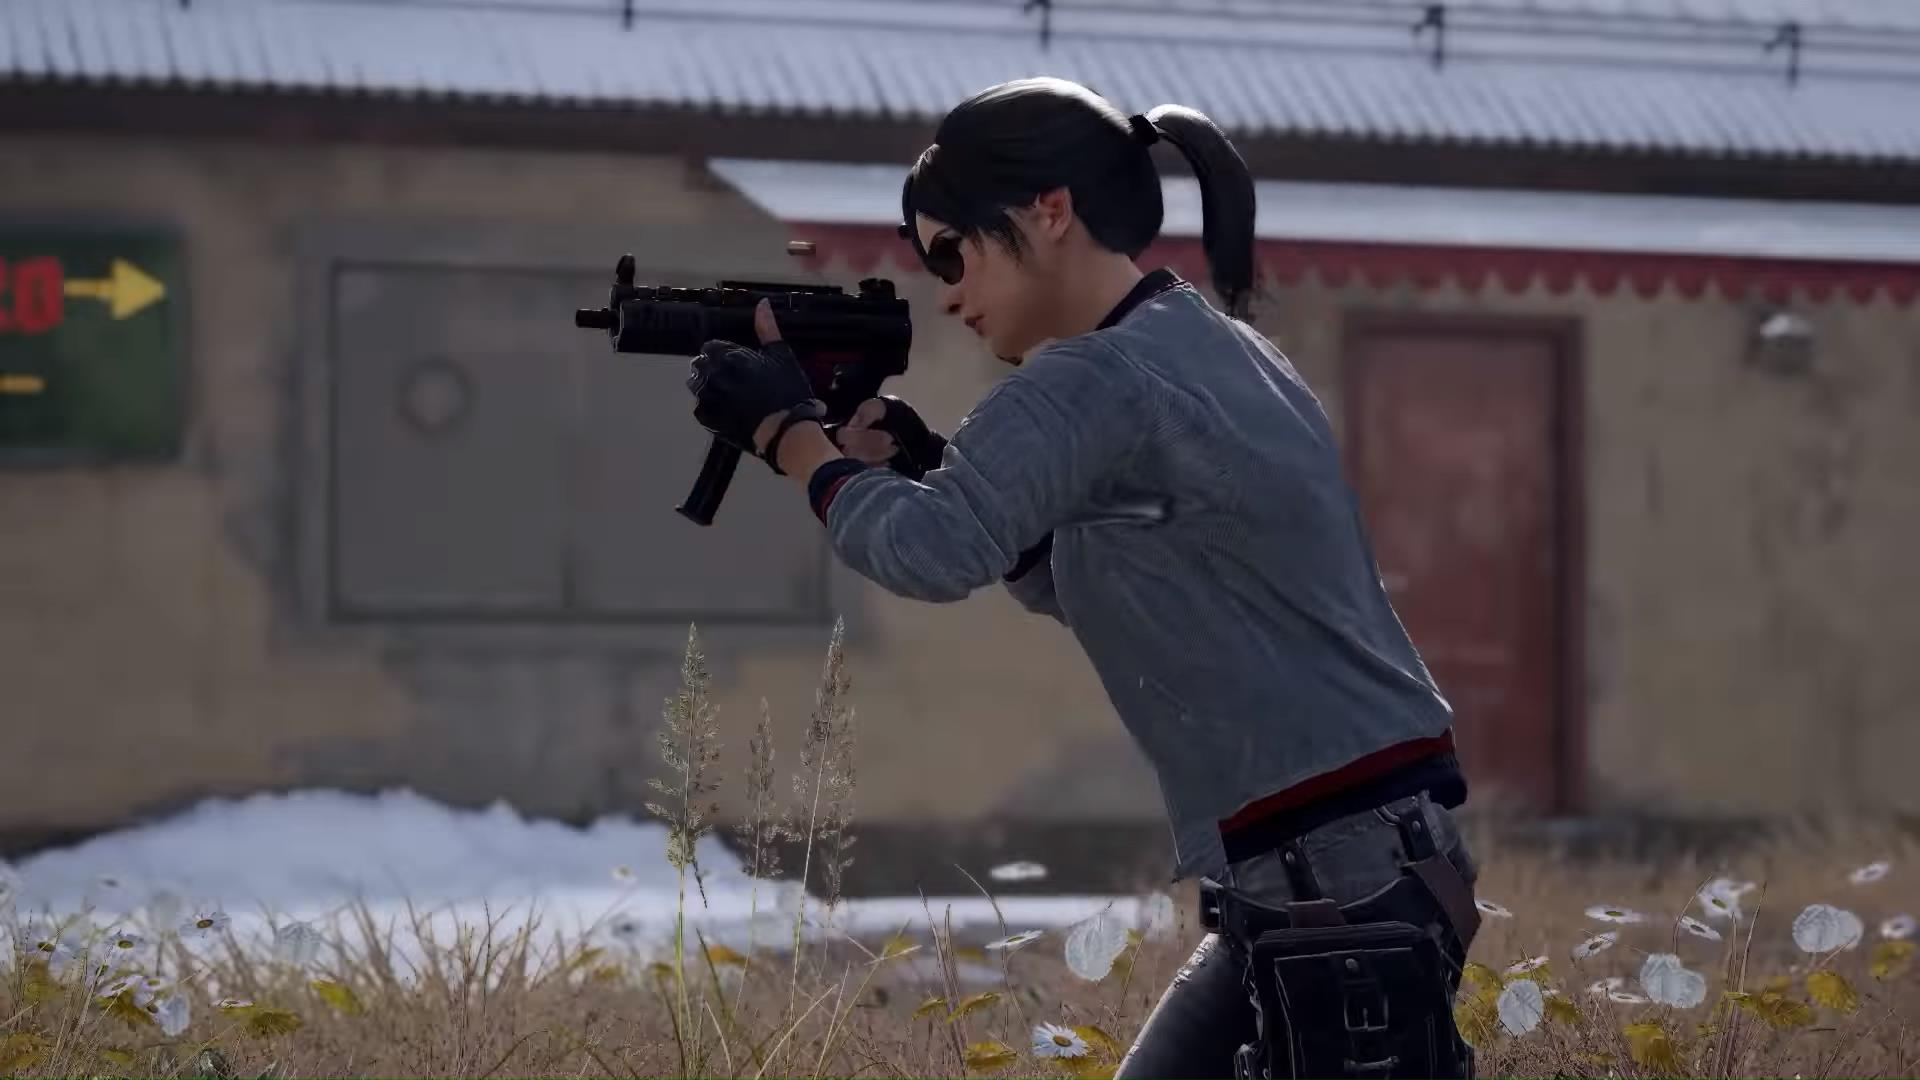 PUBG patch 27 adds MP5K, brings massive balance tweaks to weapons